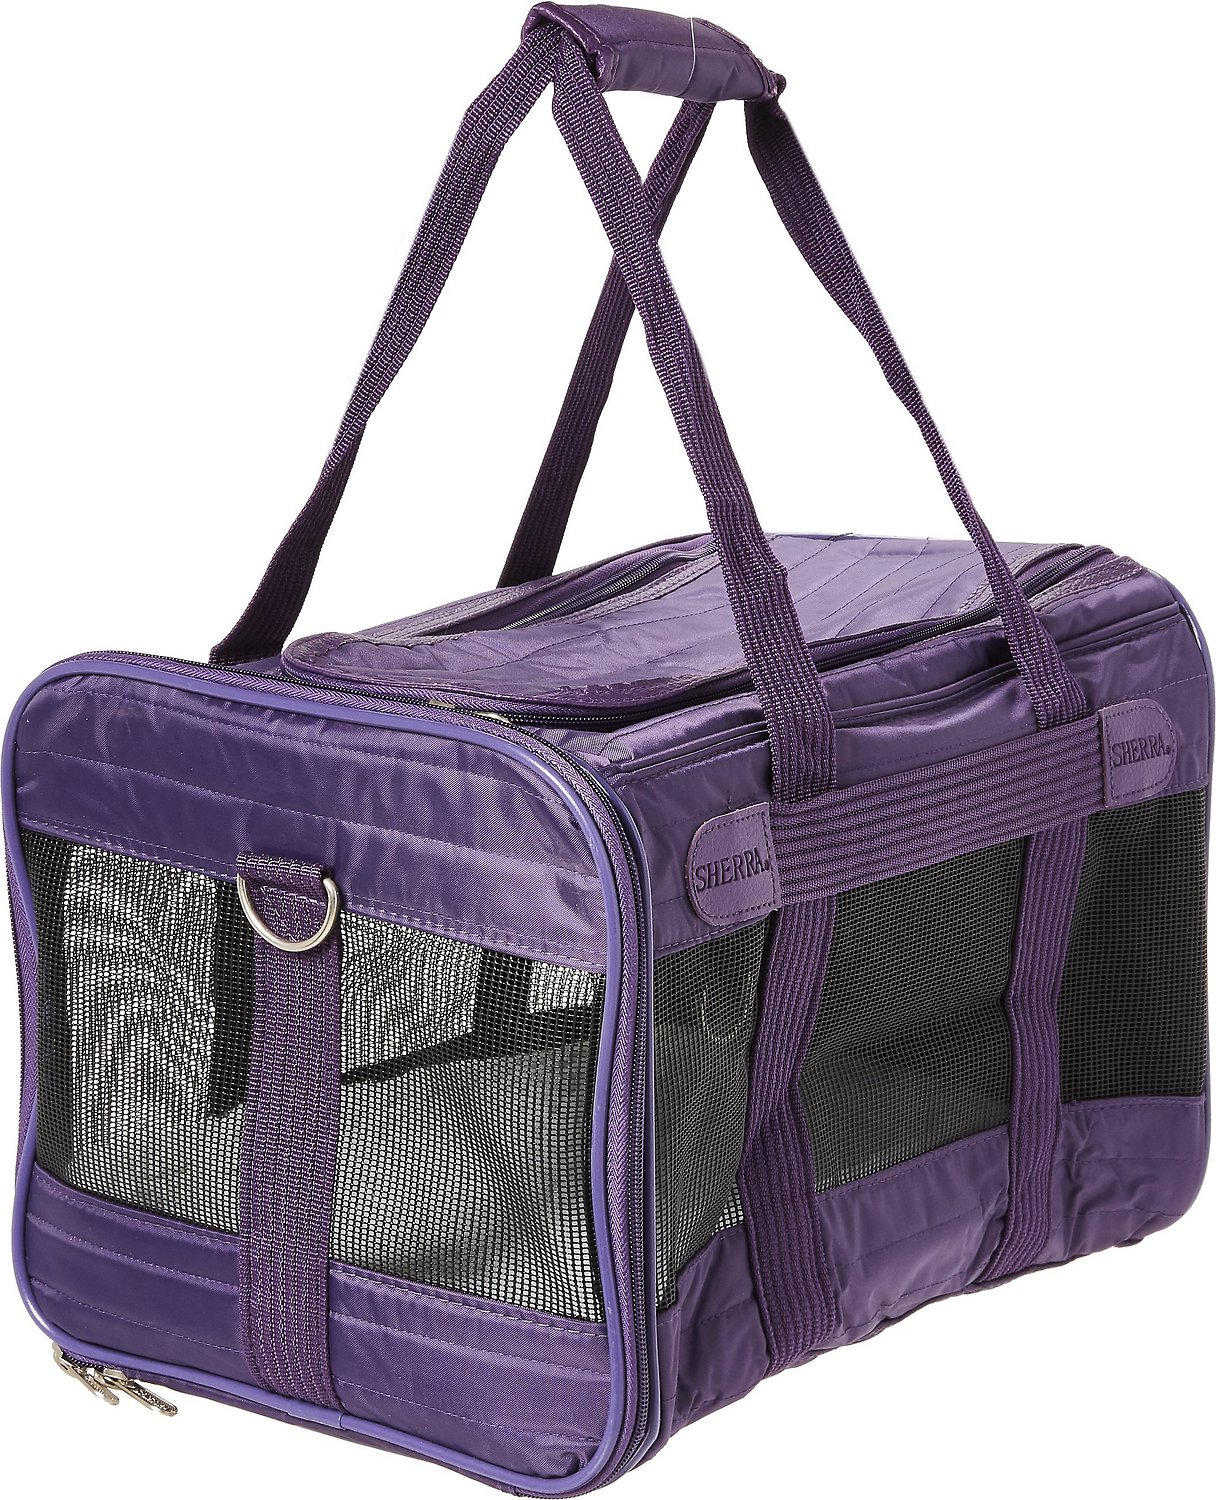 Sherpa Travel Original Deluxe Airline Approved Cat Carrier